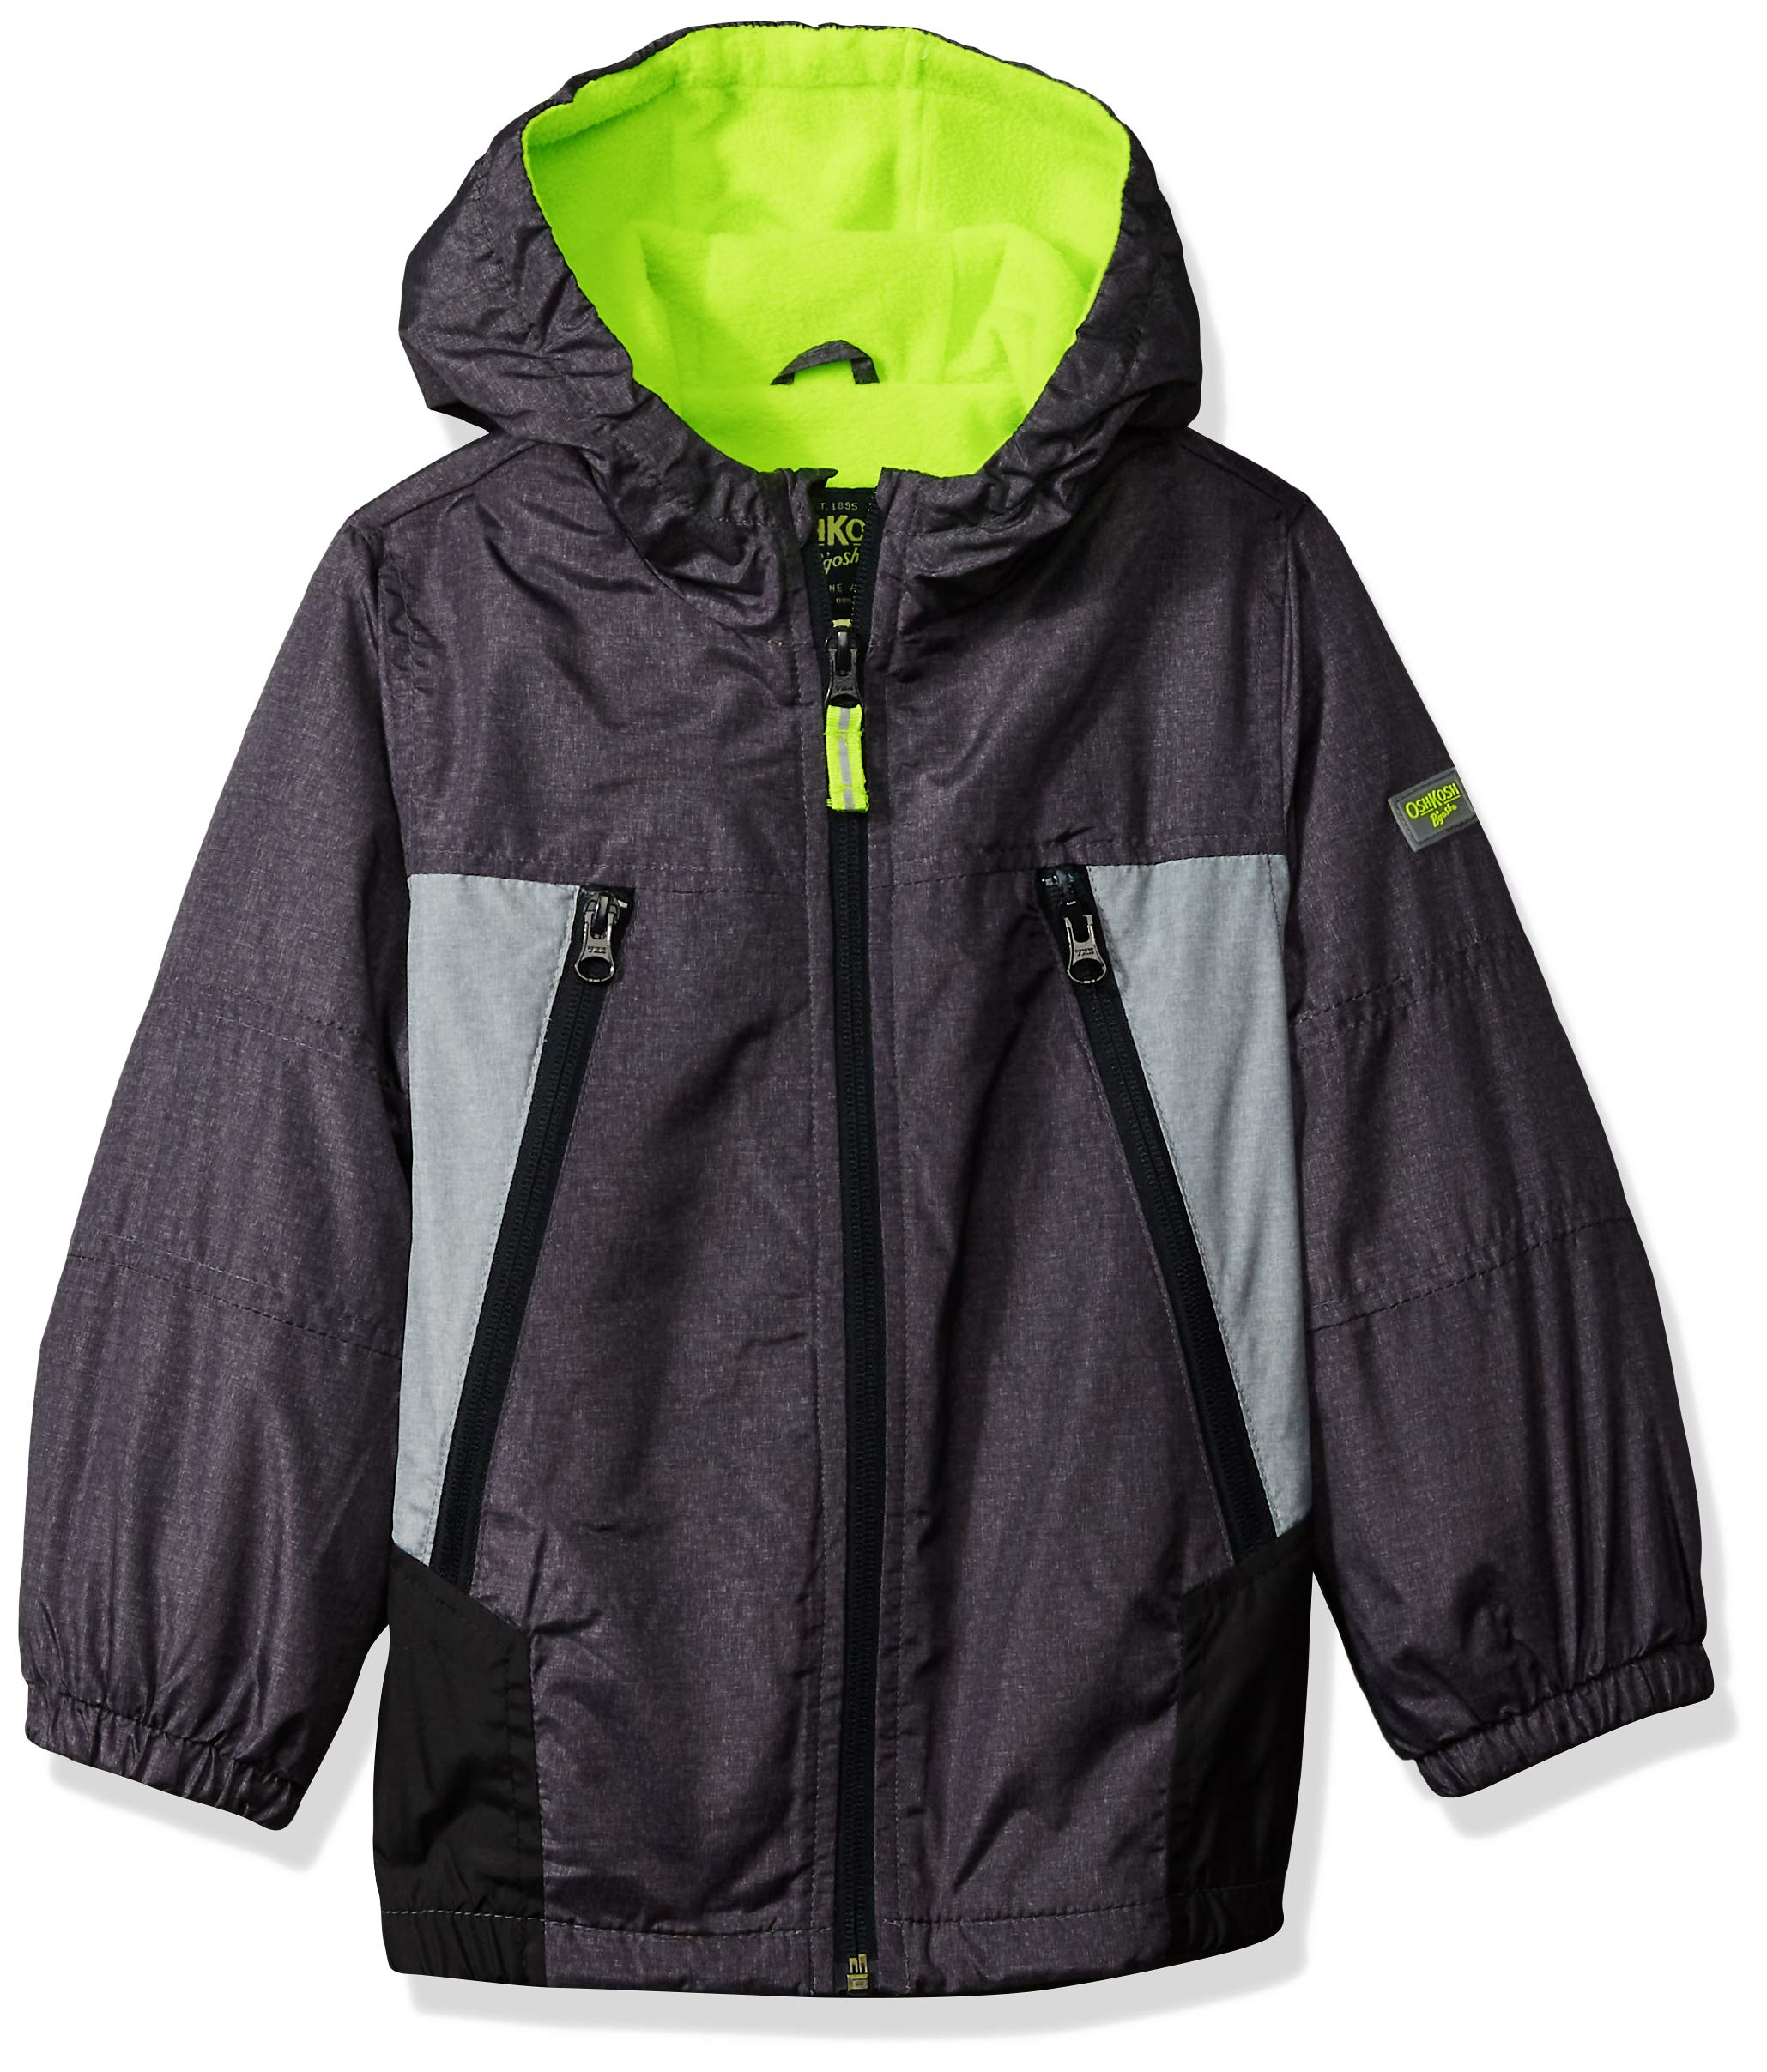 Best Rated in Boys' Outdoor Recreation Jackets & Helpful